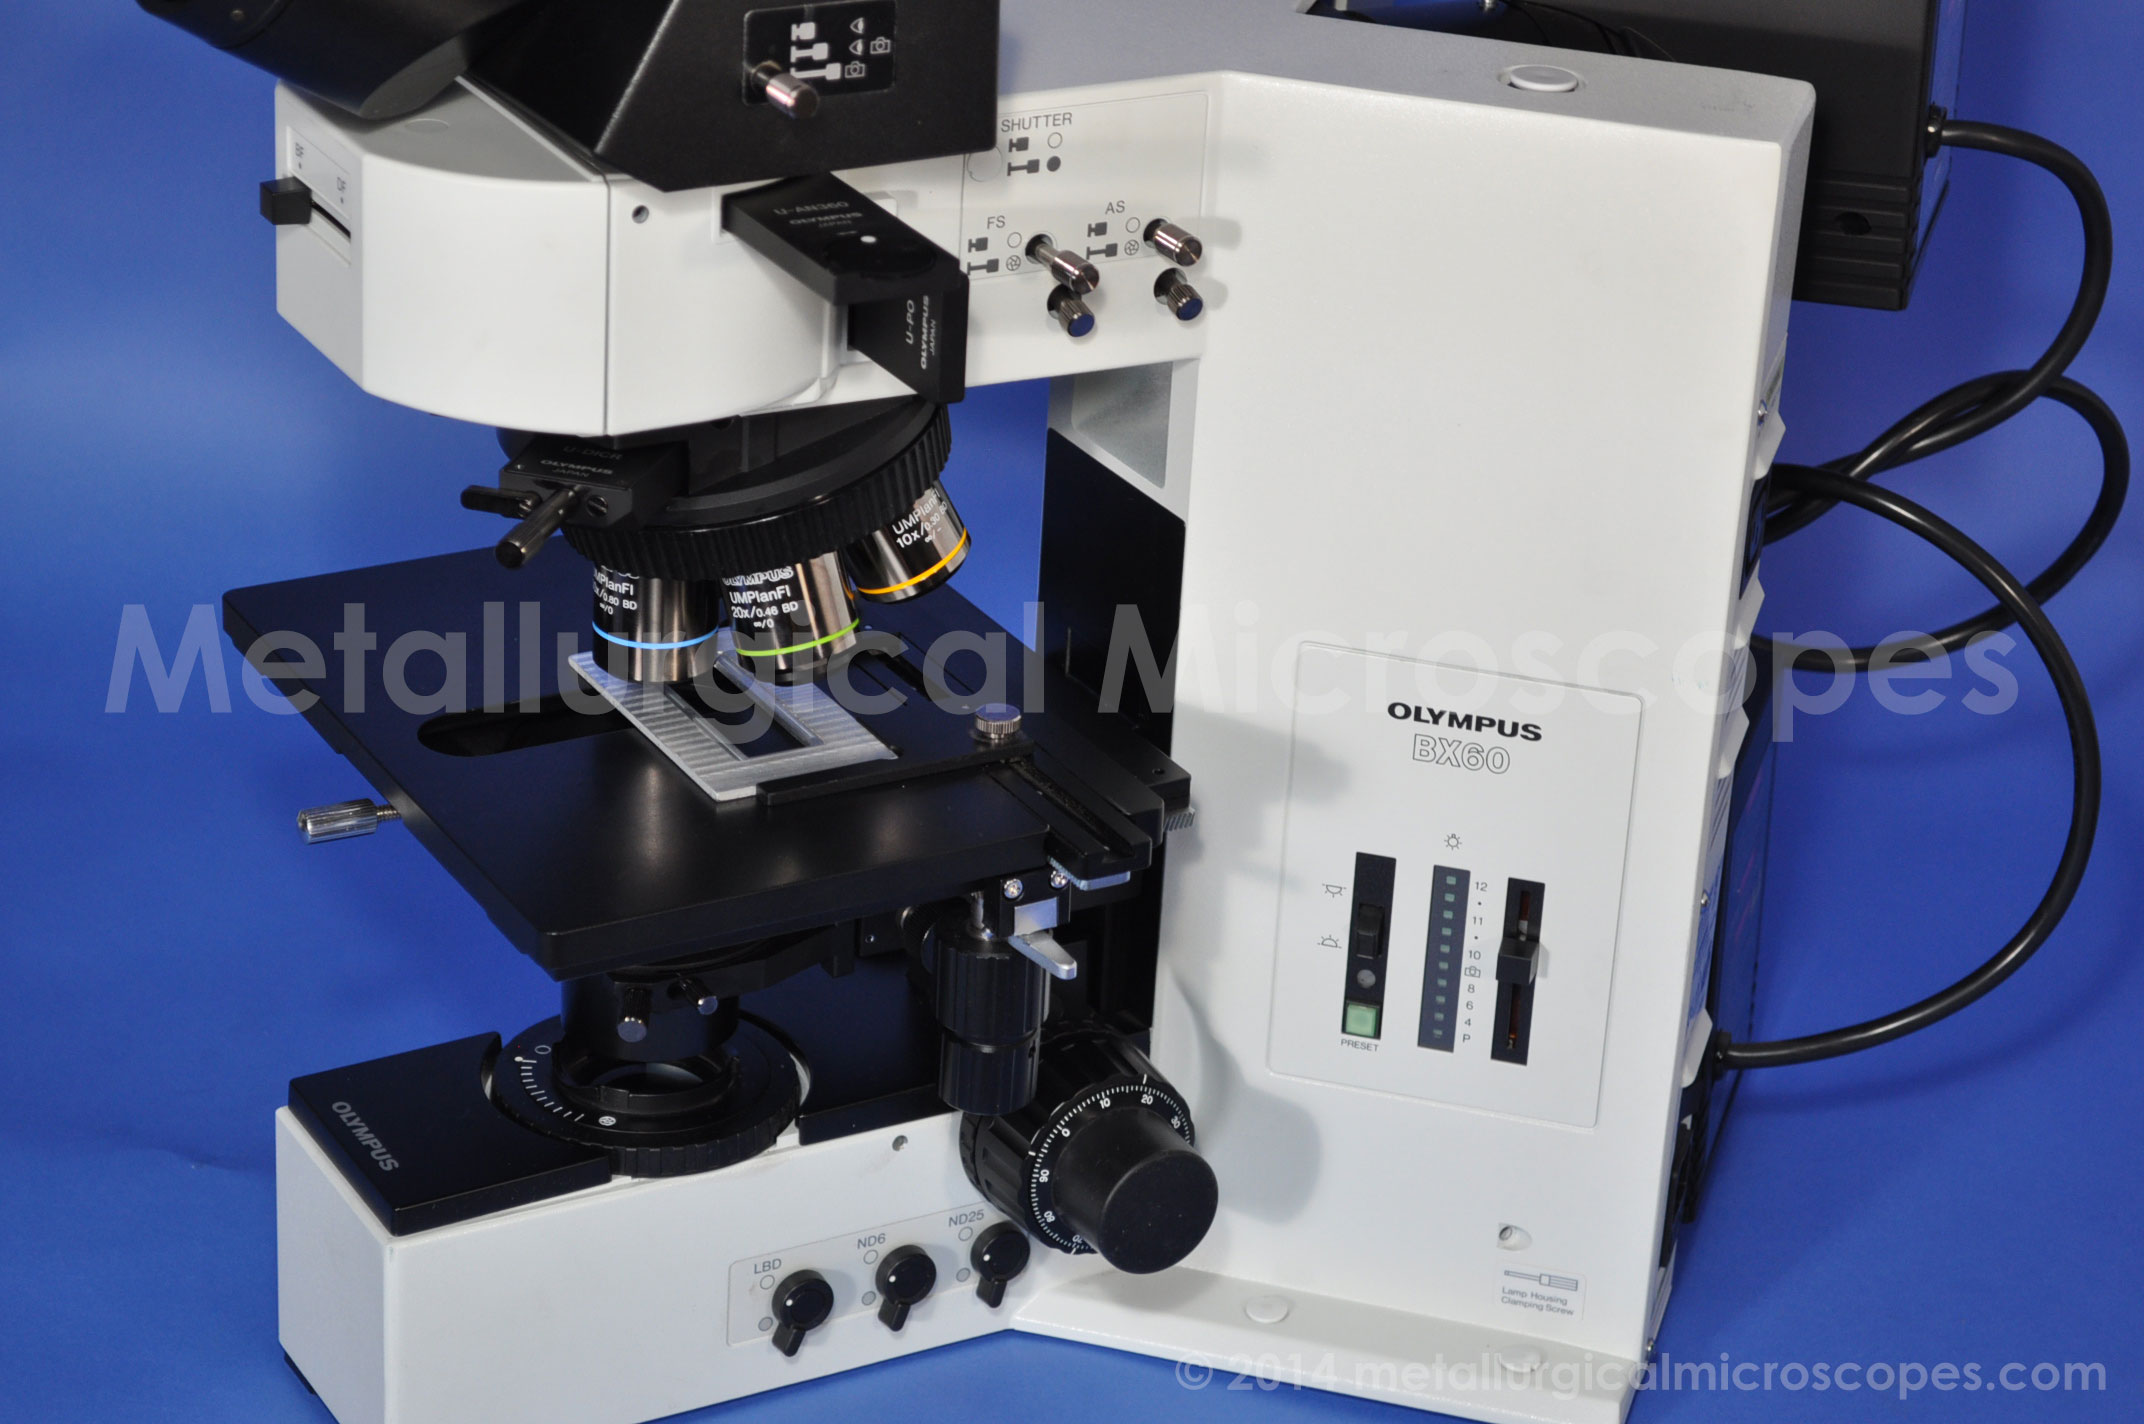 olympus bx60 darkfield dic metallurgical microscope rh metallurgicalmicroscopes com Olympus Microscopes Condenser Diagram Olympus Microscope Parts Labeled